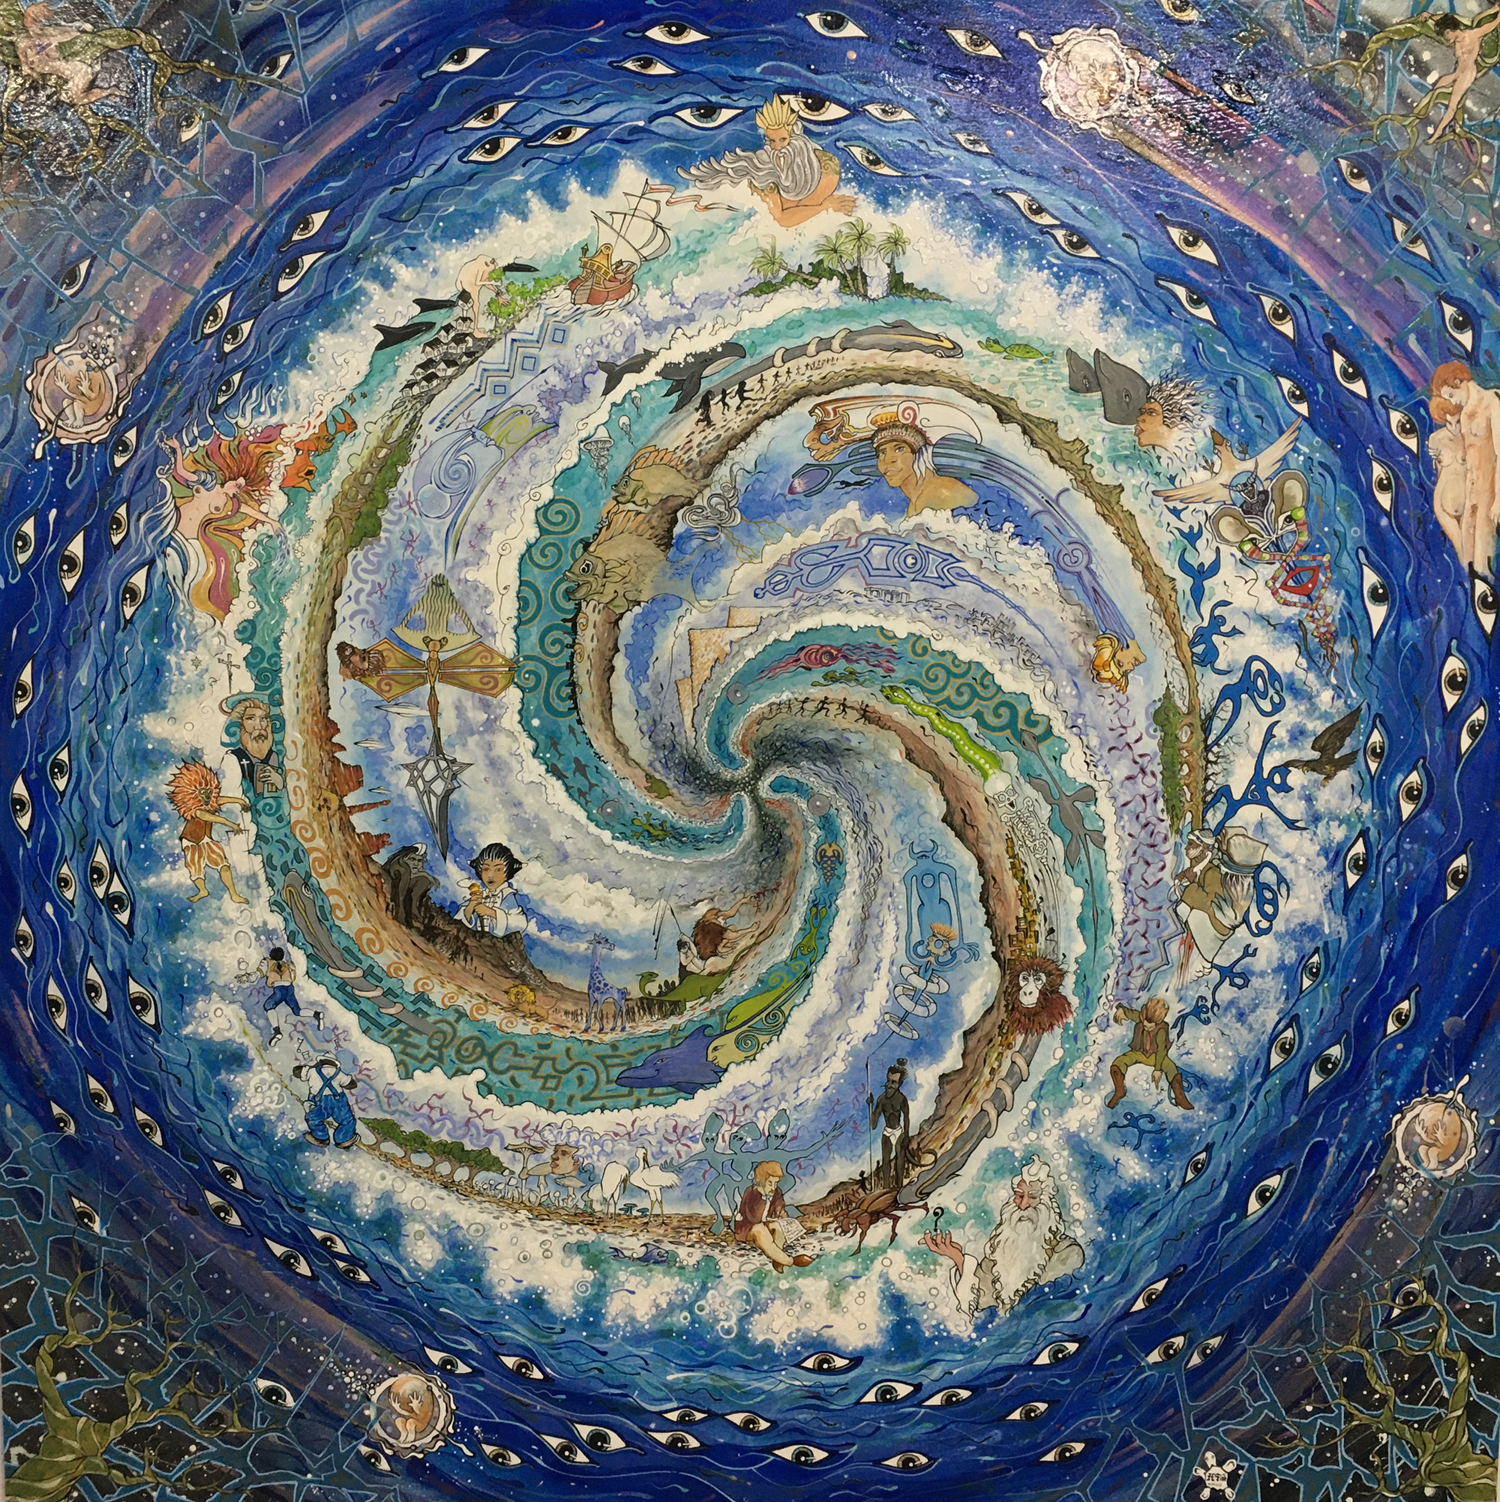 THE SWIRLING